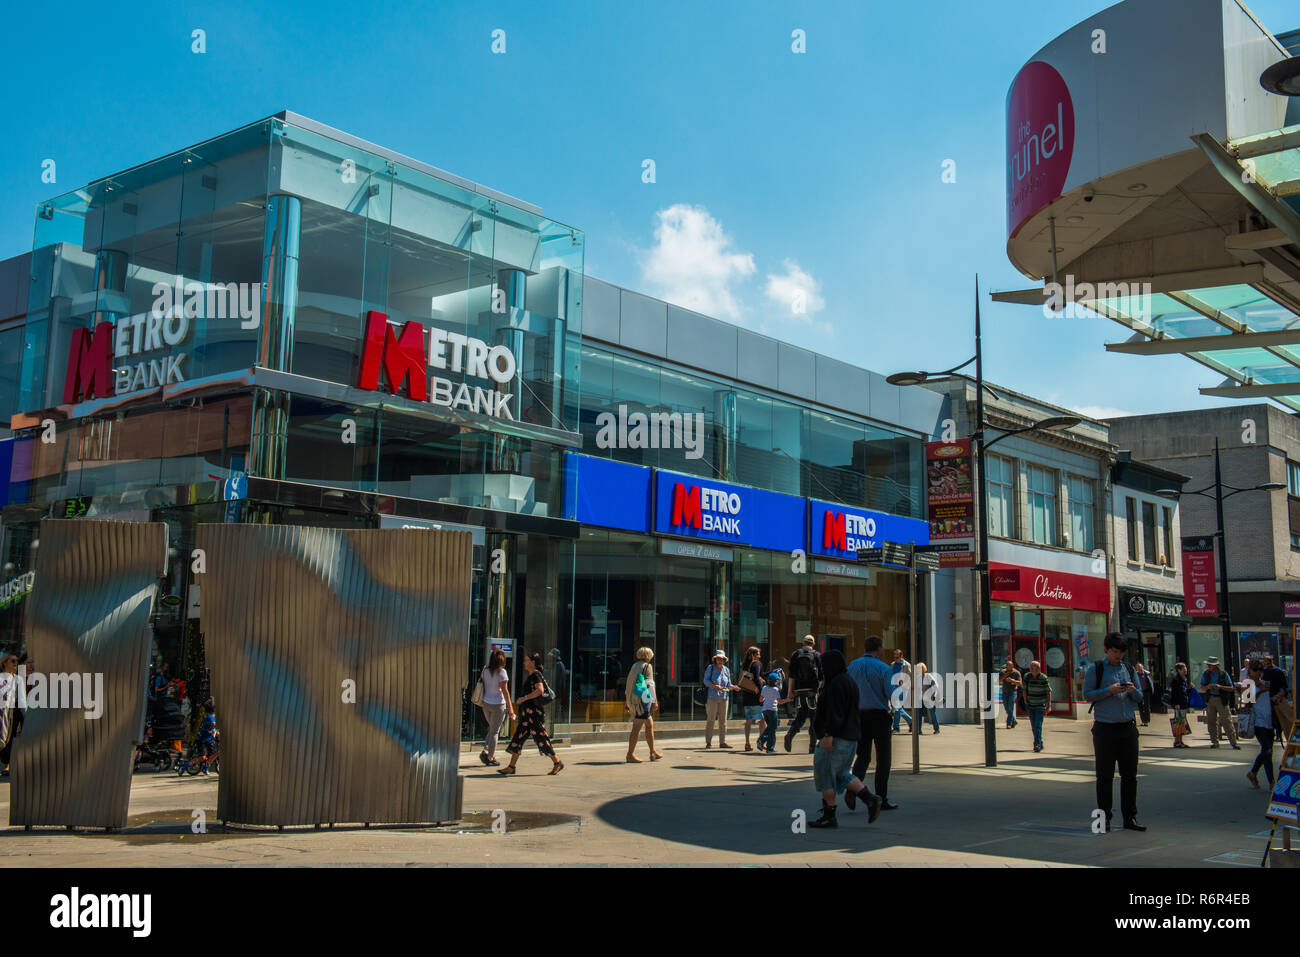 Banking and Shopping in swindon 22nd May, 2018 - Stock Image